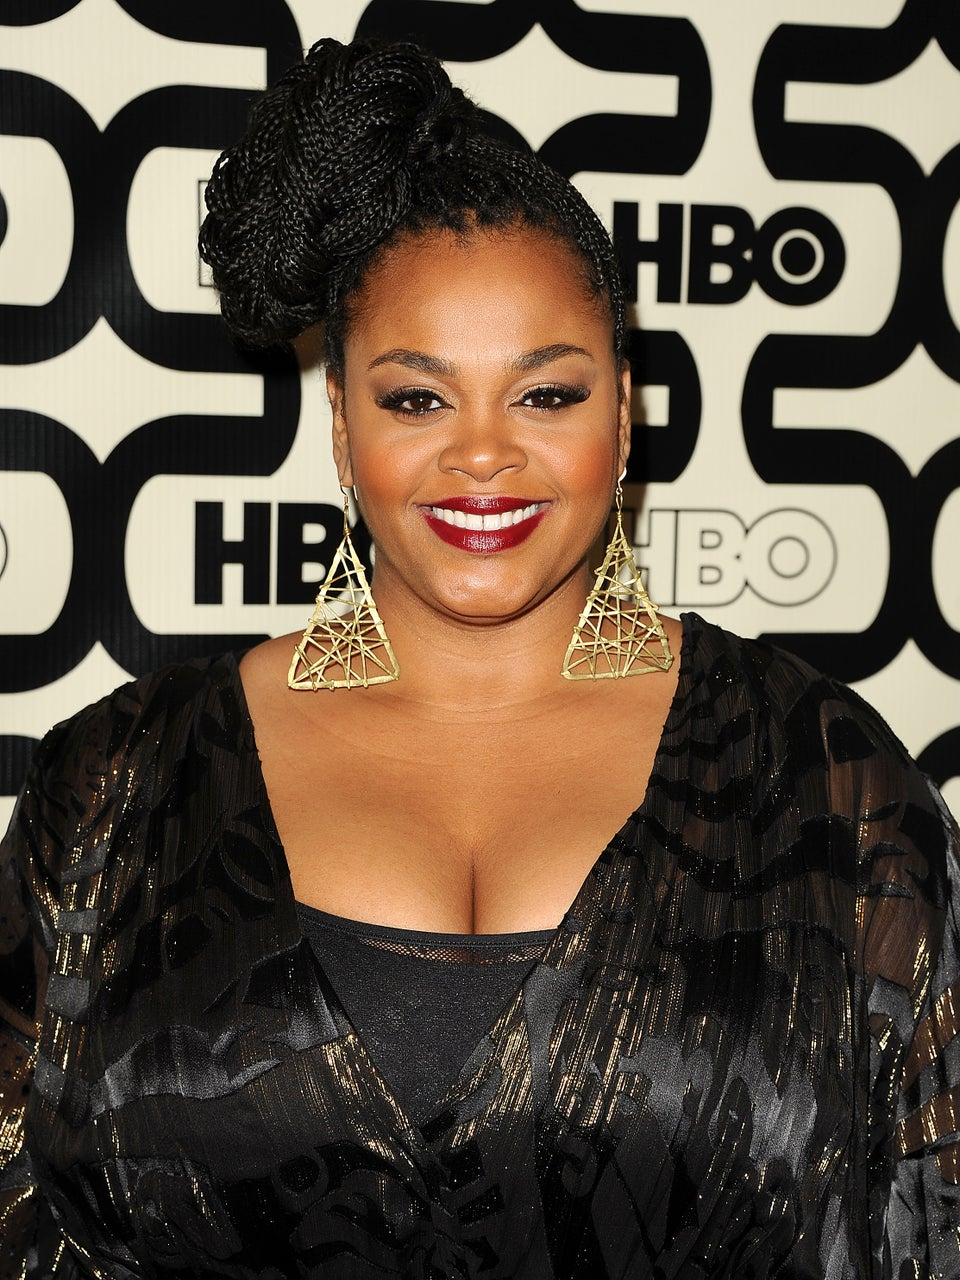 Coffee Talk: Jill Scott Teams up With Usher for 'The Voice'